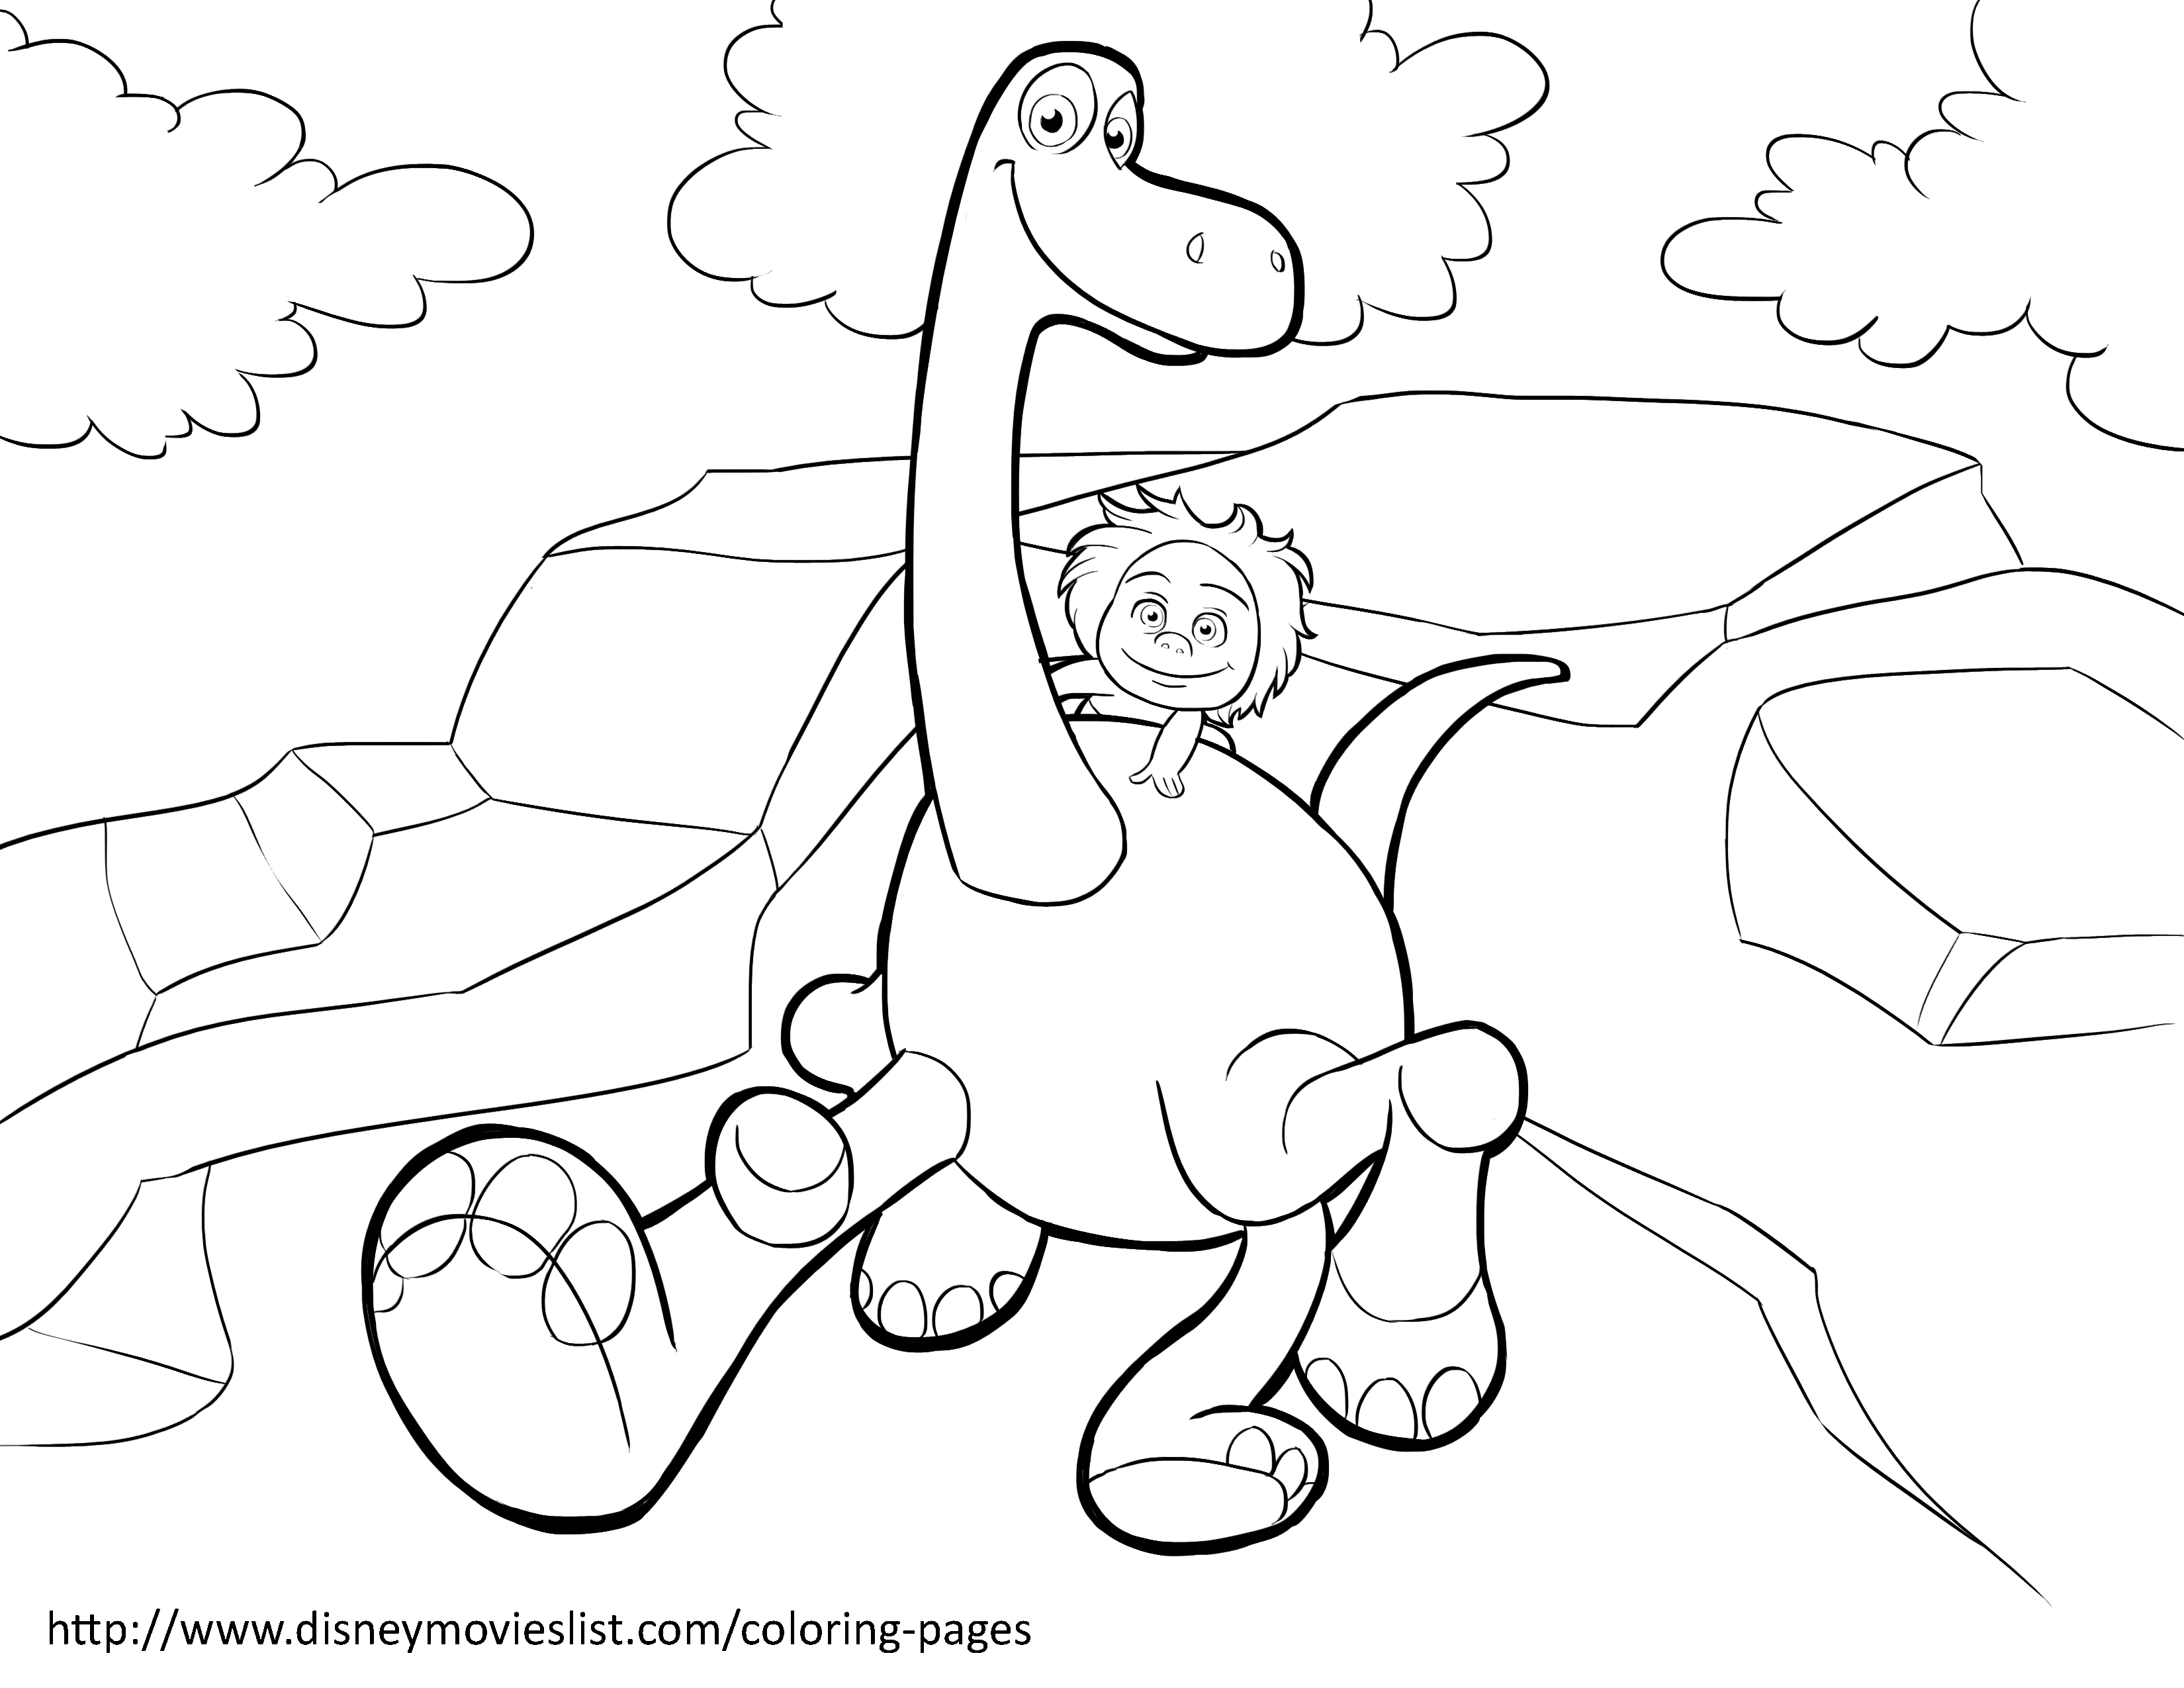 3300x2550 Exclusive Free Dinosaur Coloring Pages To Print Dinosaurs Com